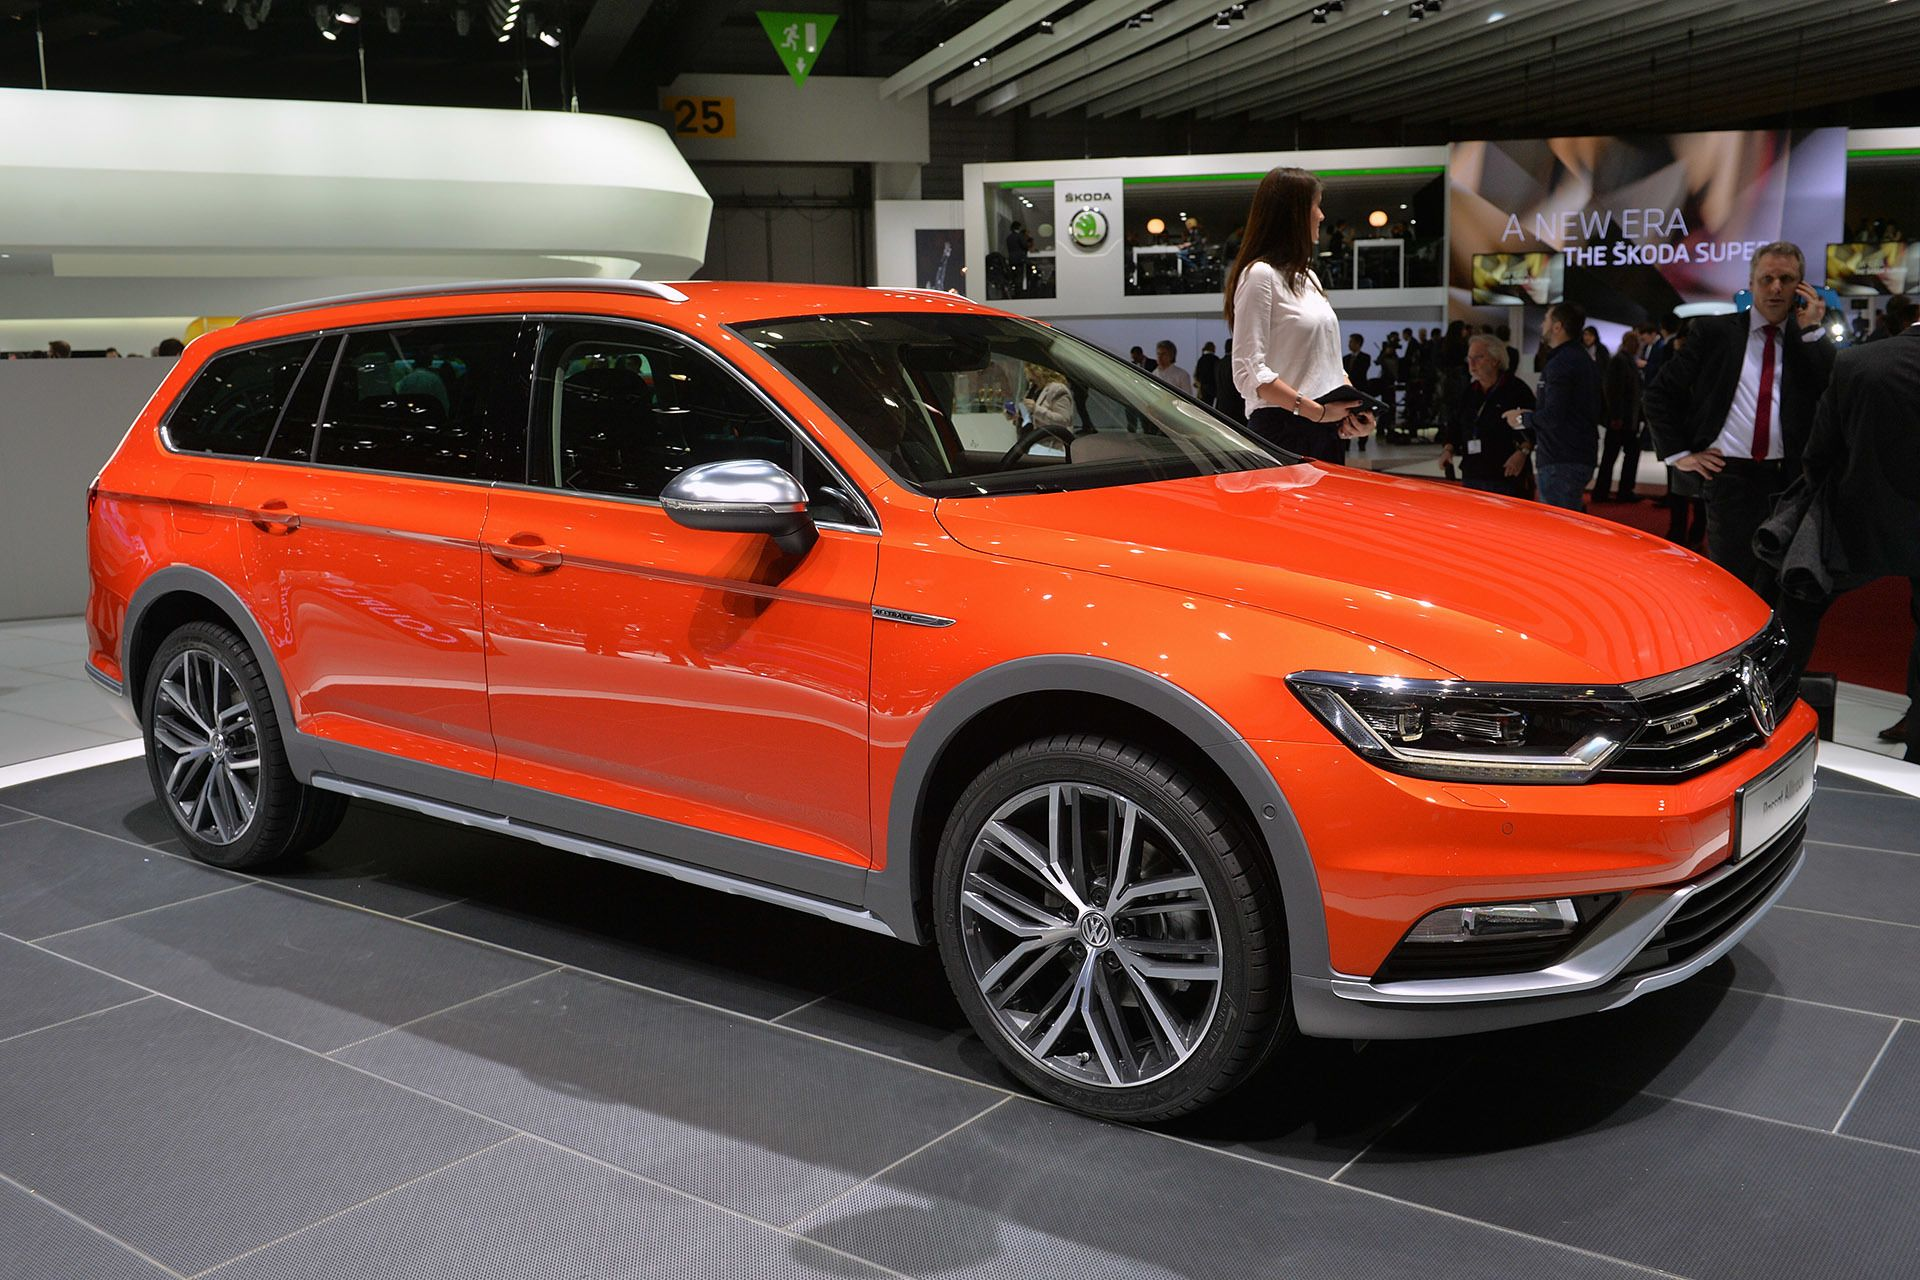 2015 Volkswagen Passat Alltrack ready for any road except in the US